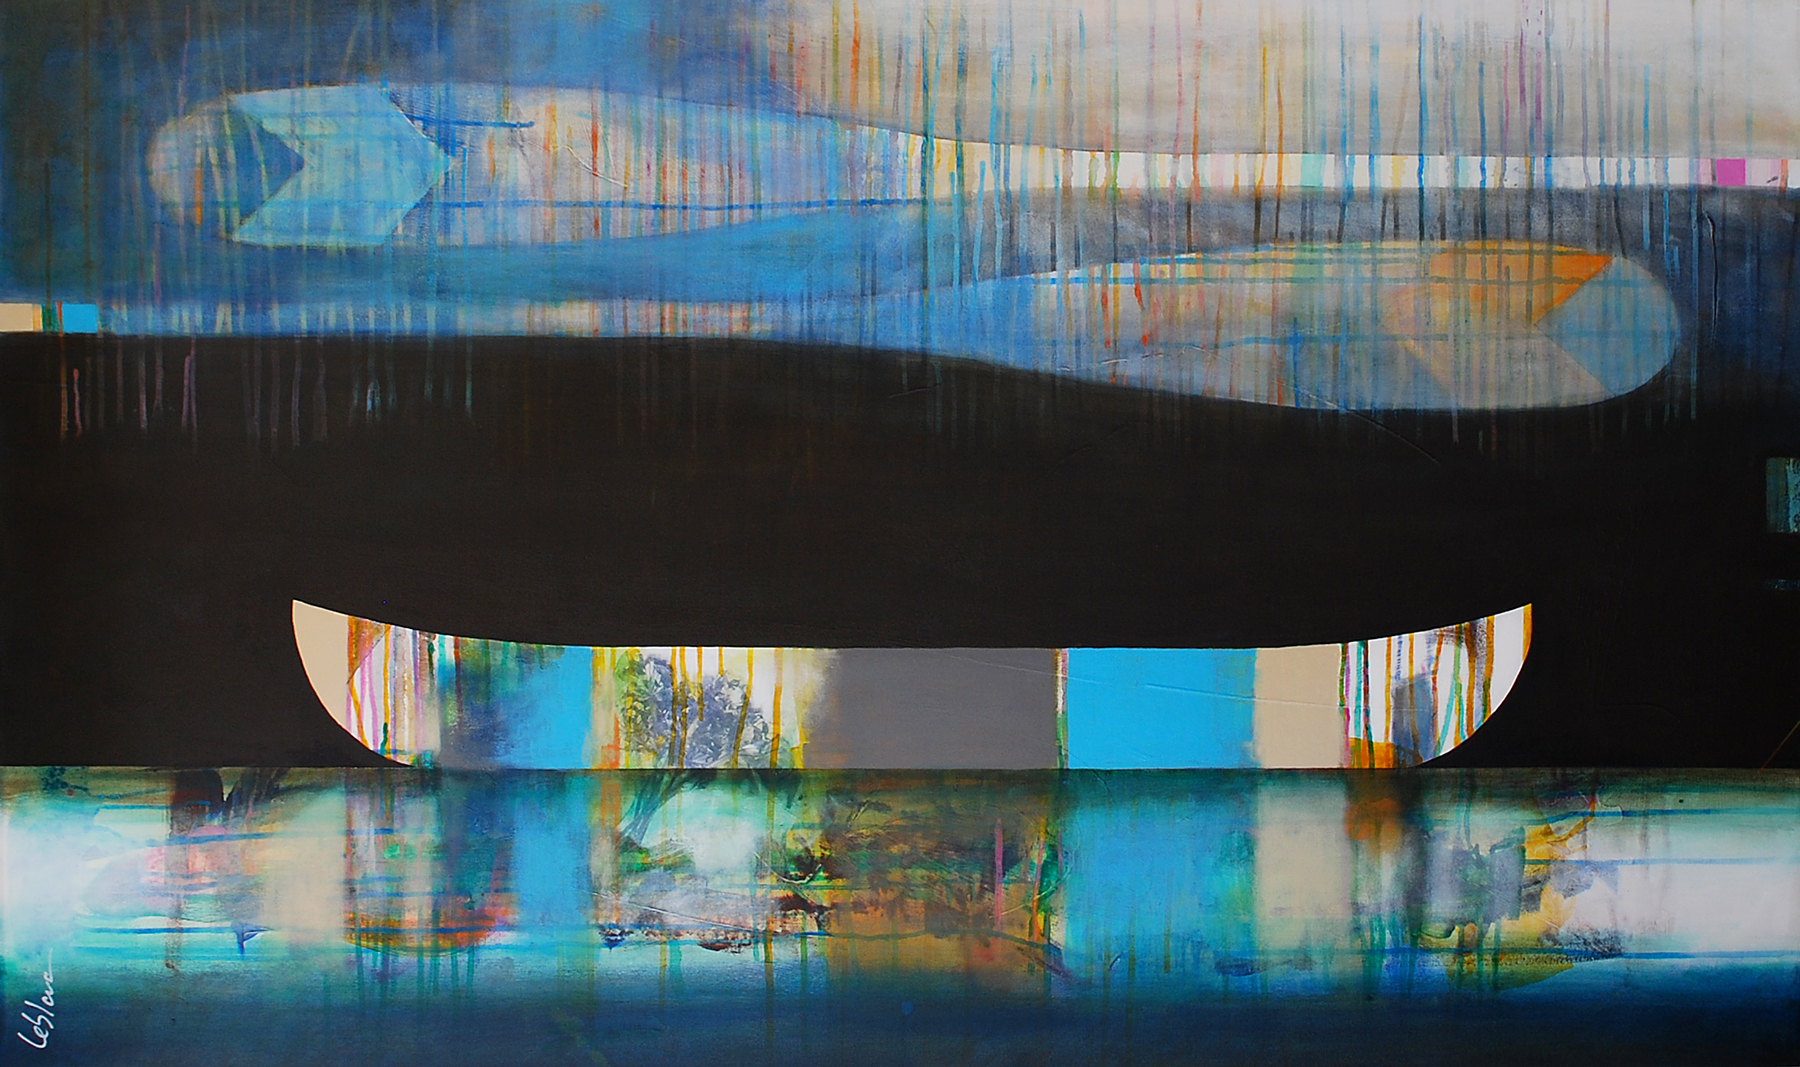 Les nuances des bleus, mixed media canoe painting by Sylvain Leblanc | Effusion Art Gallery + Glass Studio, Invermere BC